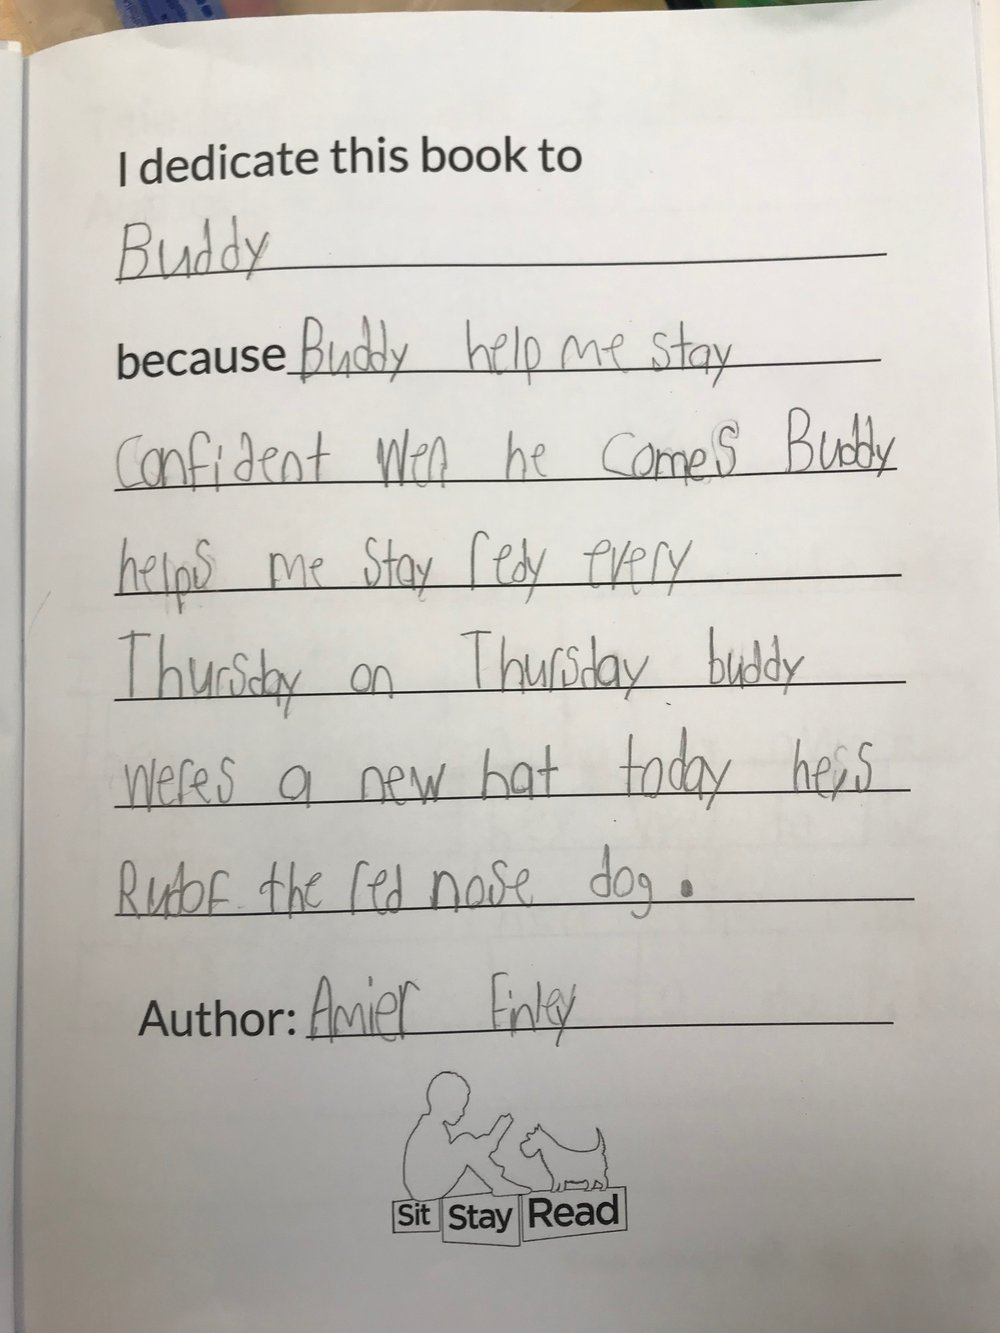 Second-grader Amier's dedication page written out to Certified Reading Assistance Dog Buddy.